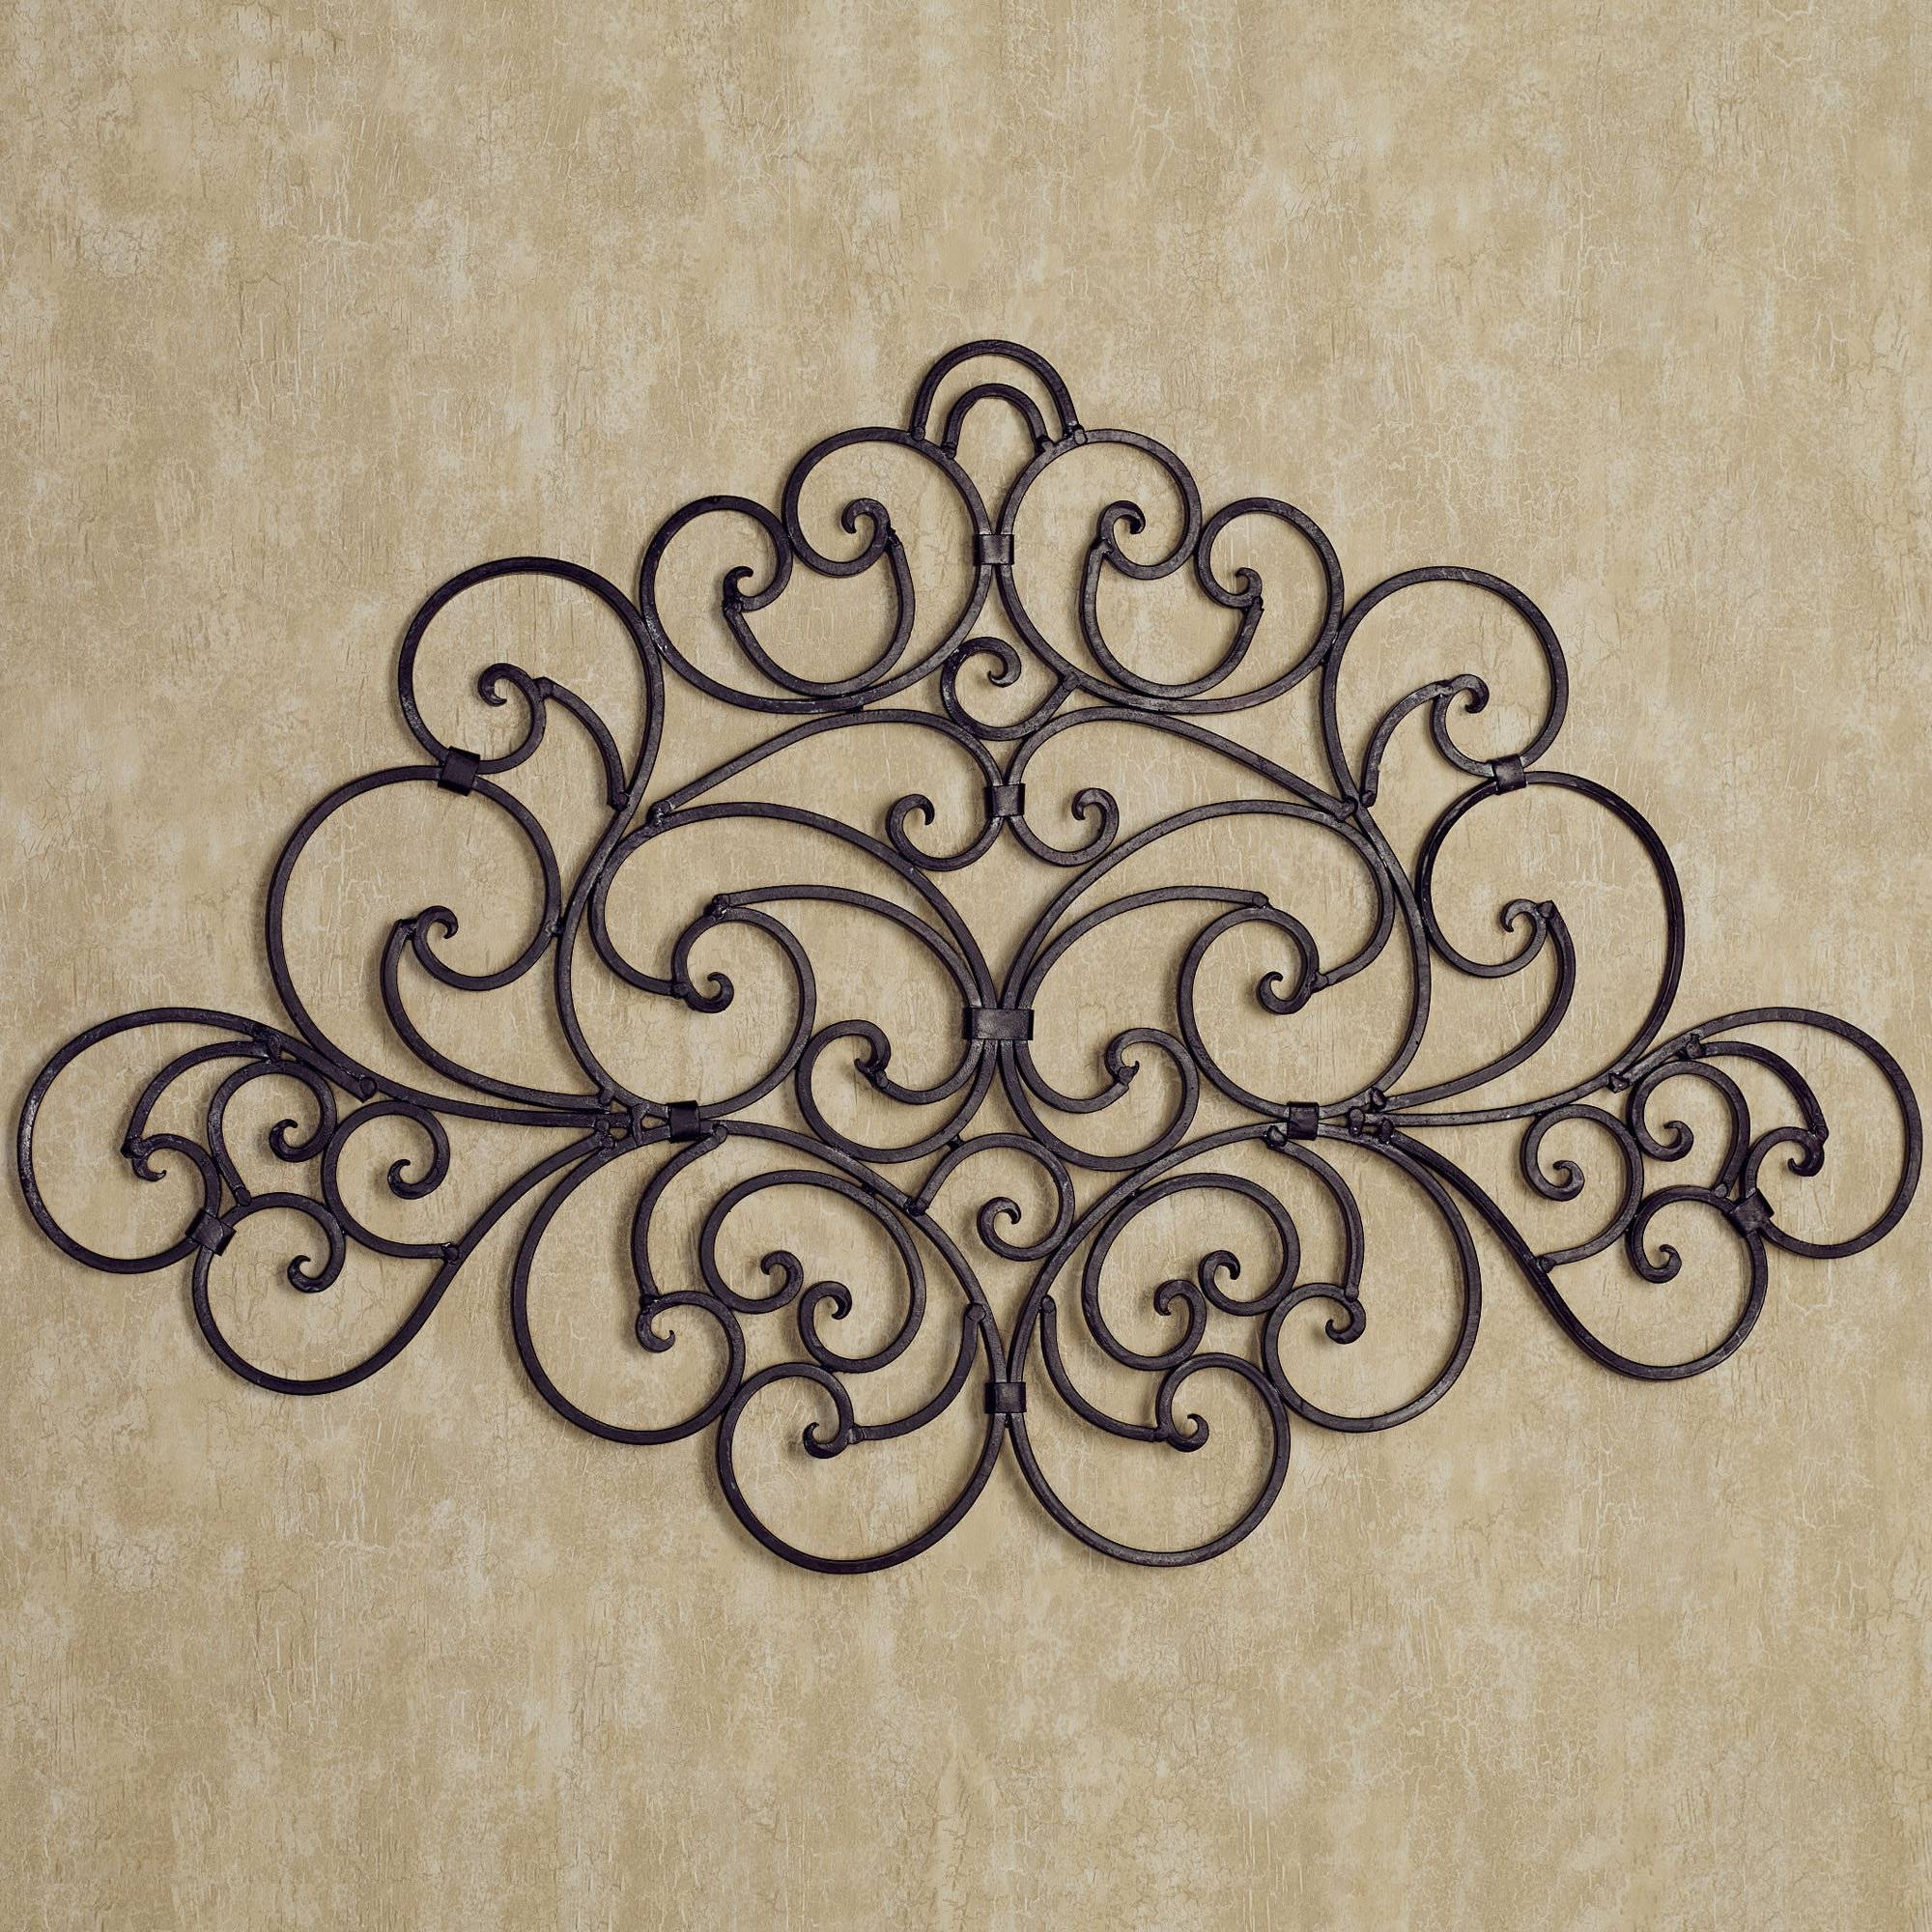 Black In Wrought Iron Wall Decor – Home Designing With Regard To Most Up To Date Tuscan Wrought Iron Wall Art (View 3 of 20)